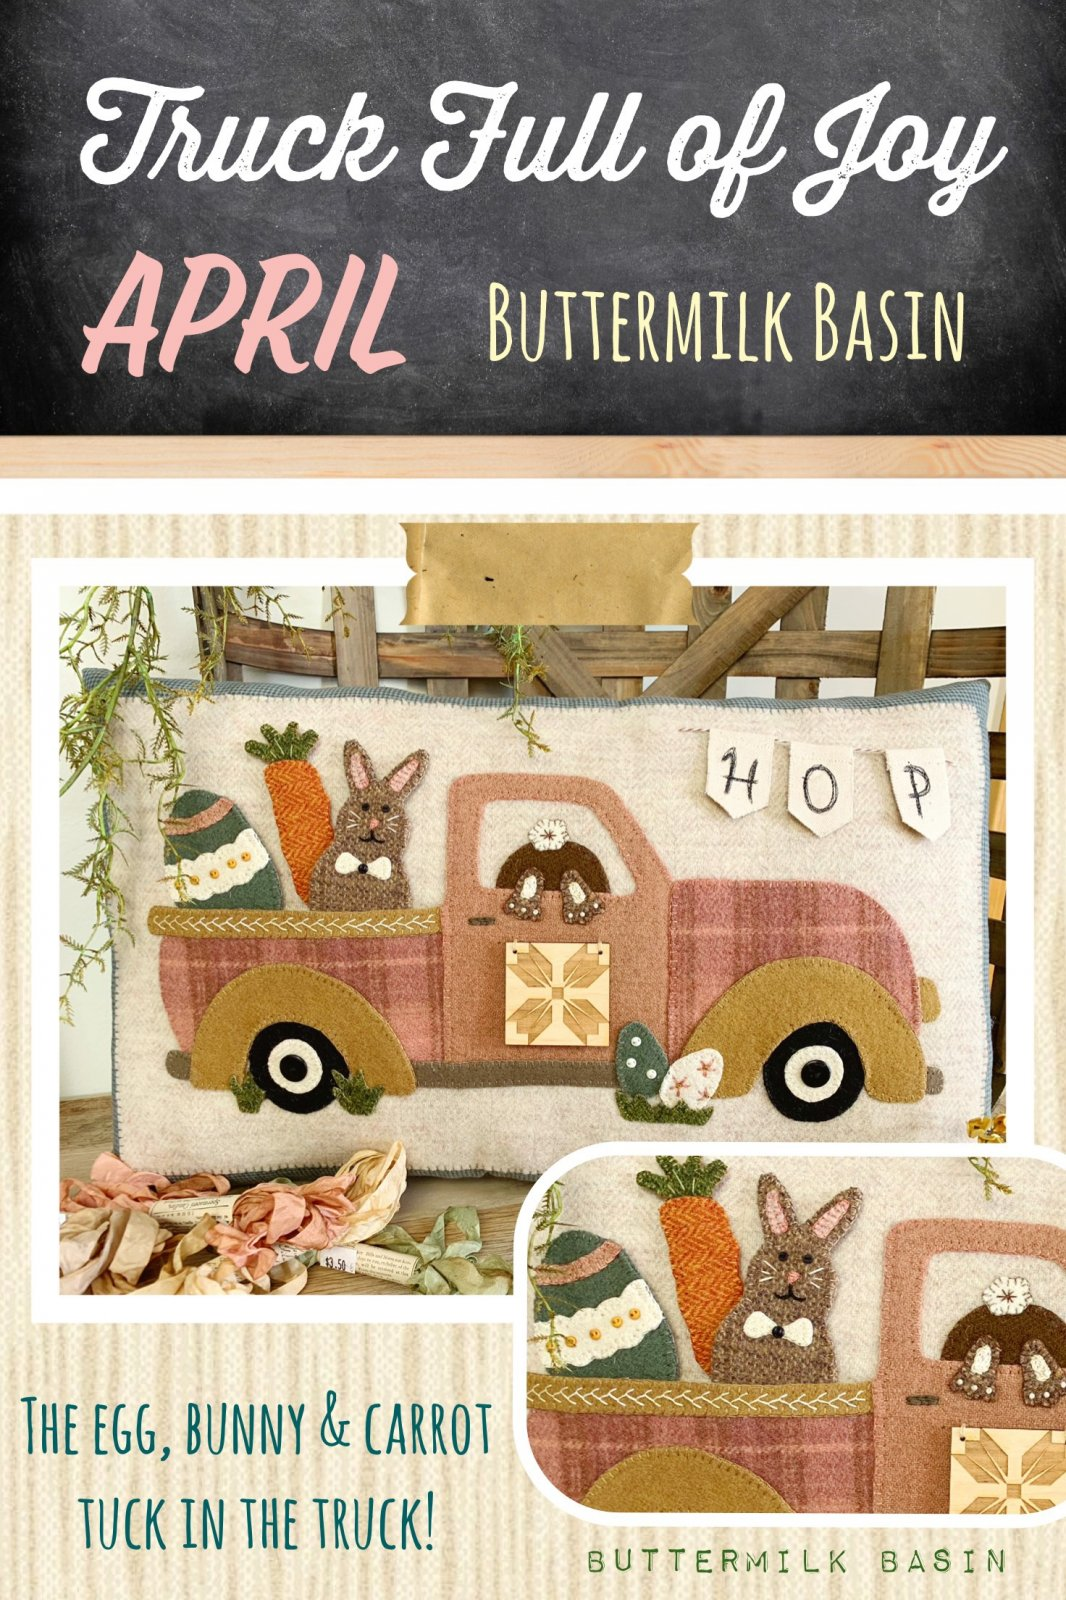 Trucks Full of Joy Monthly Pillows *April Kit & Pattern